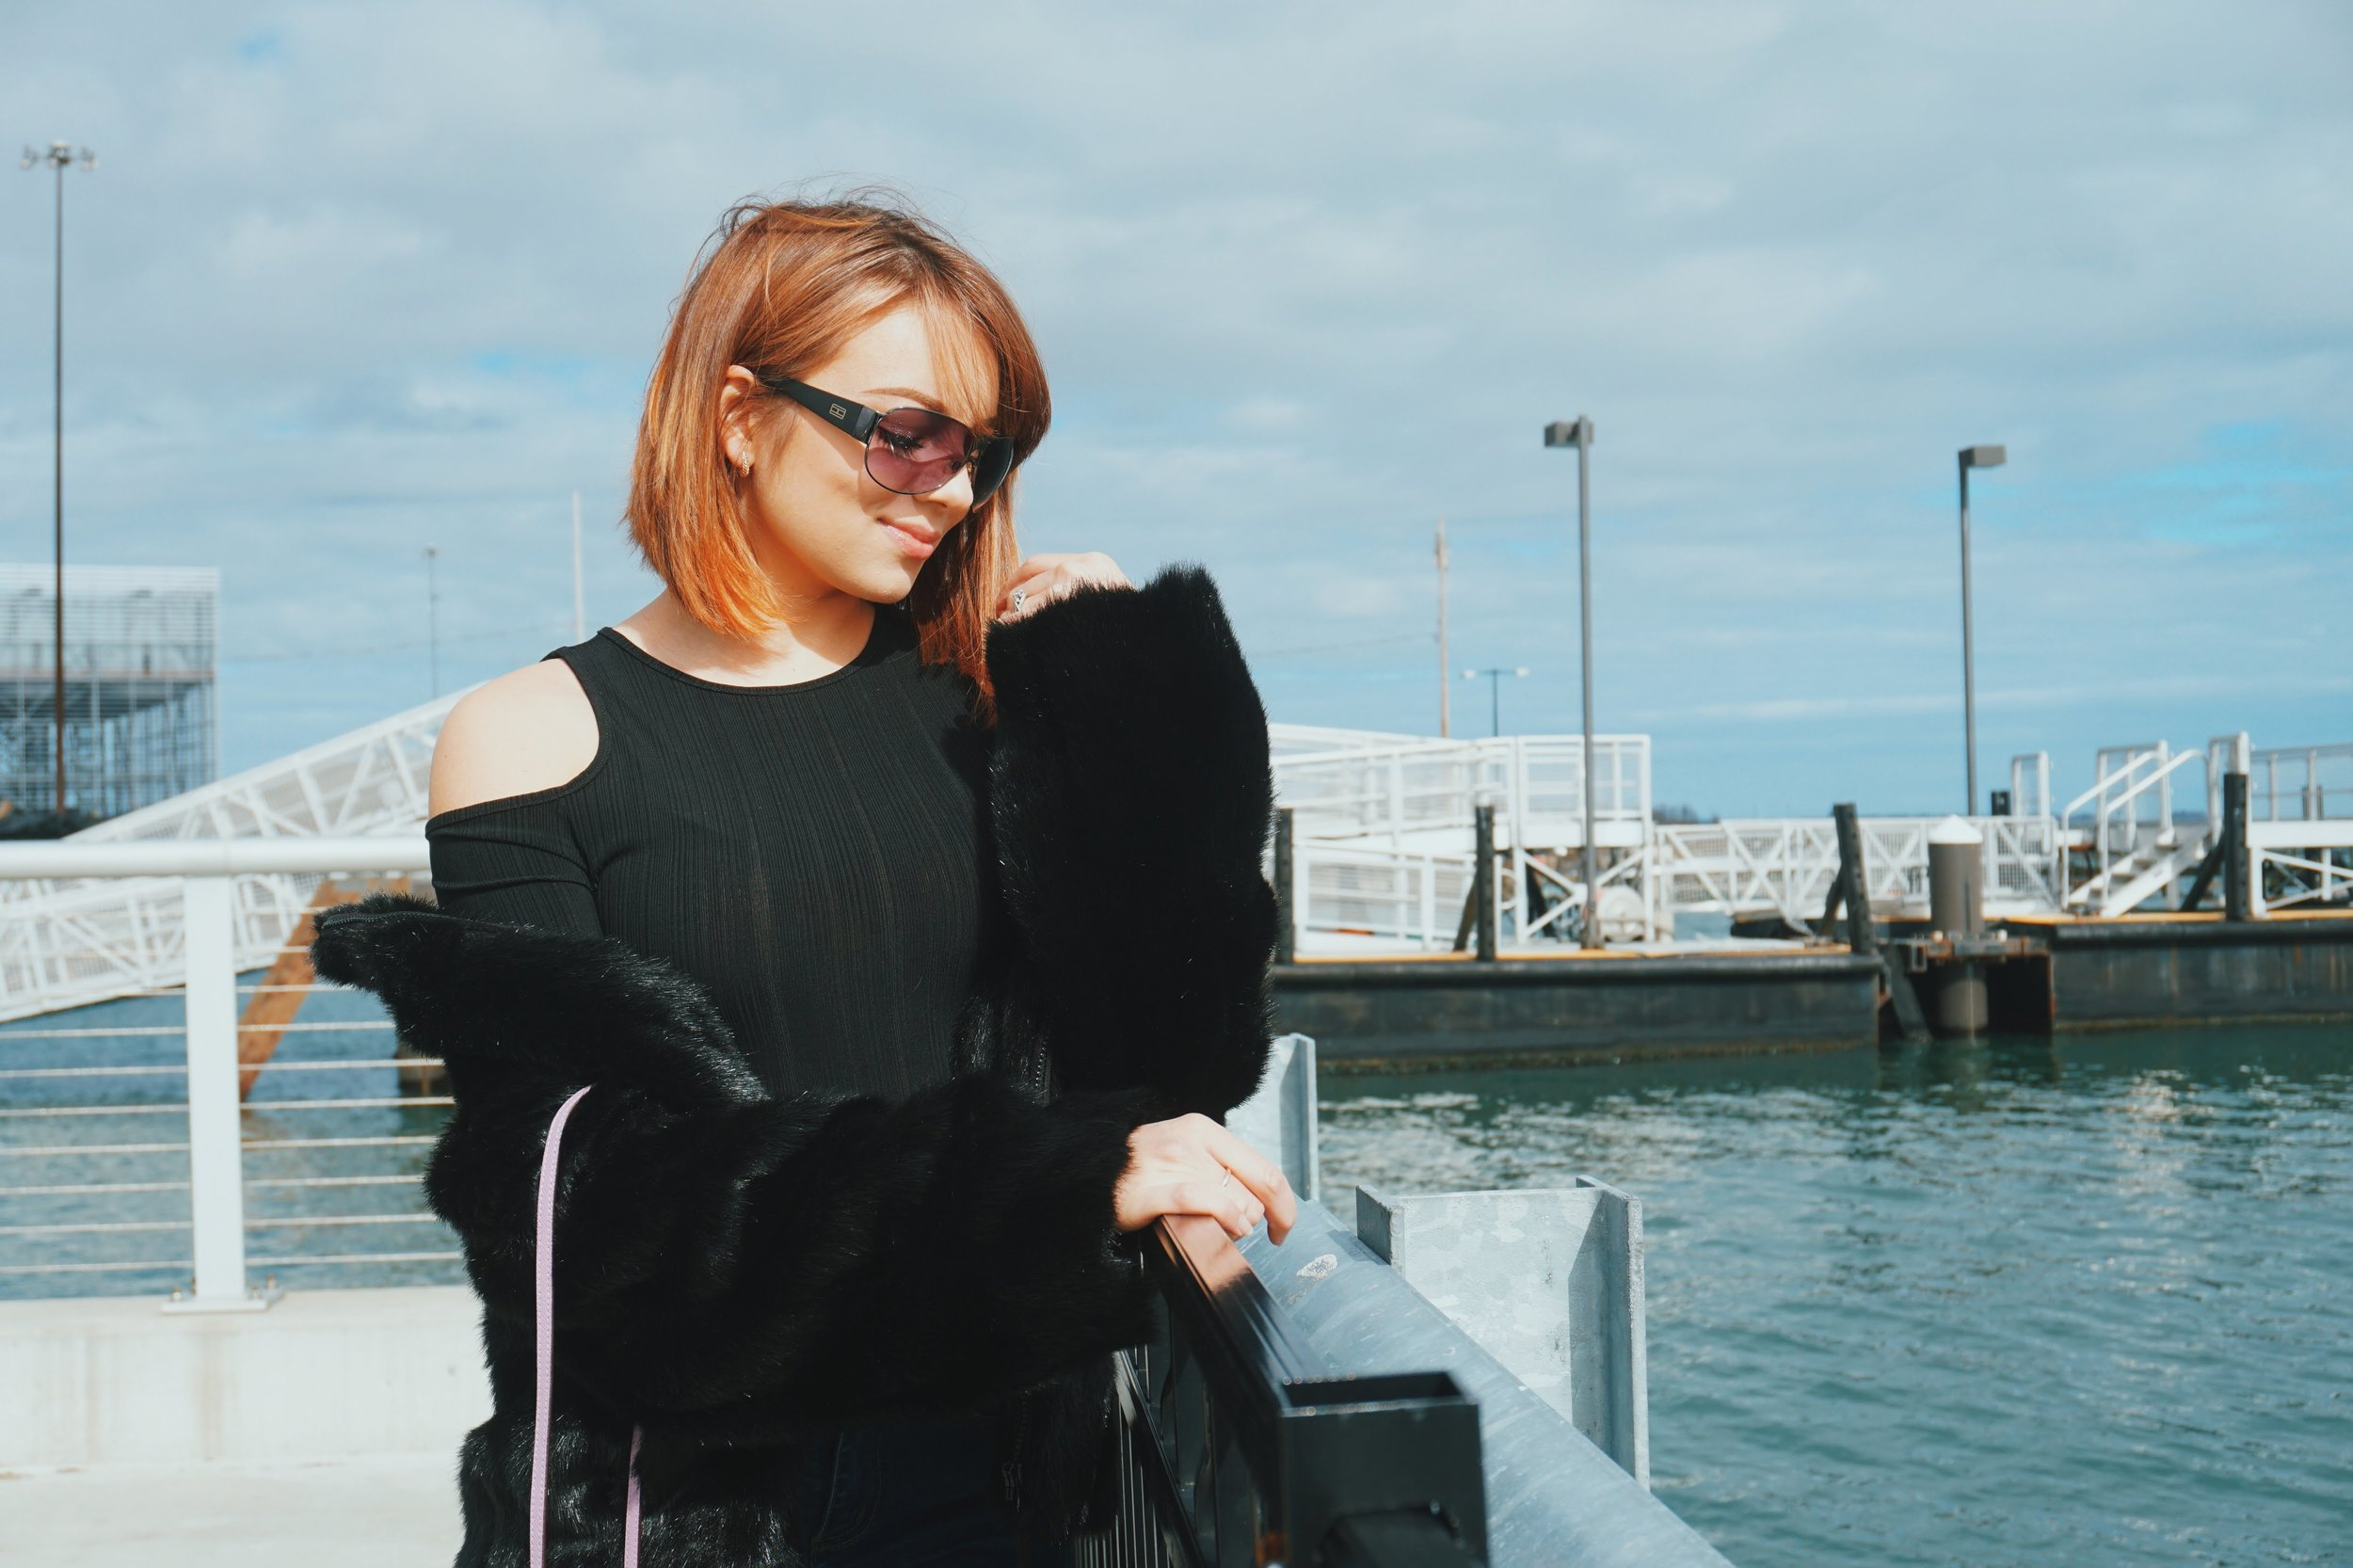 A blogger wearing an all-black outfit, posing by the ocean.